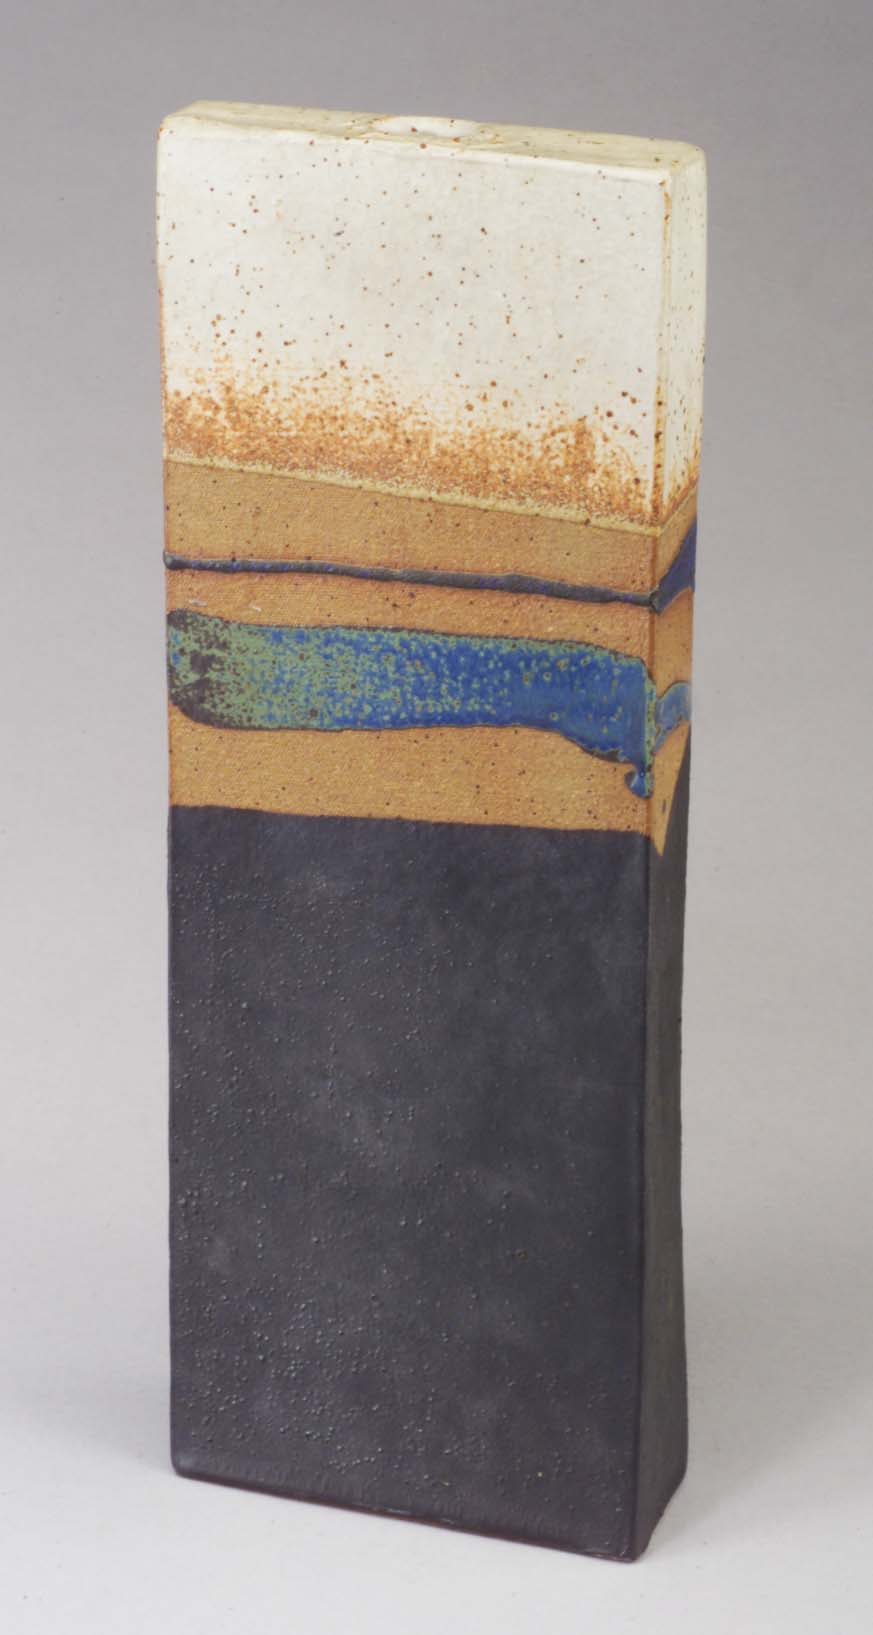 Fine WILLIAM WYMAN (1922-1980) hand-built four-sided stoneware vase, 1967, with random bands in blue and brown over a gunmetal glaze. Incised signature/date. 15